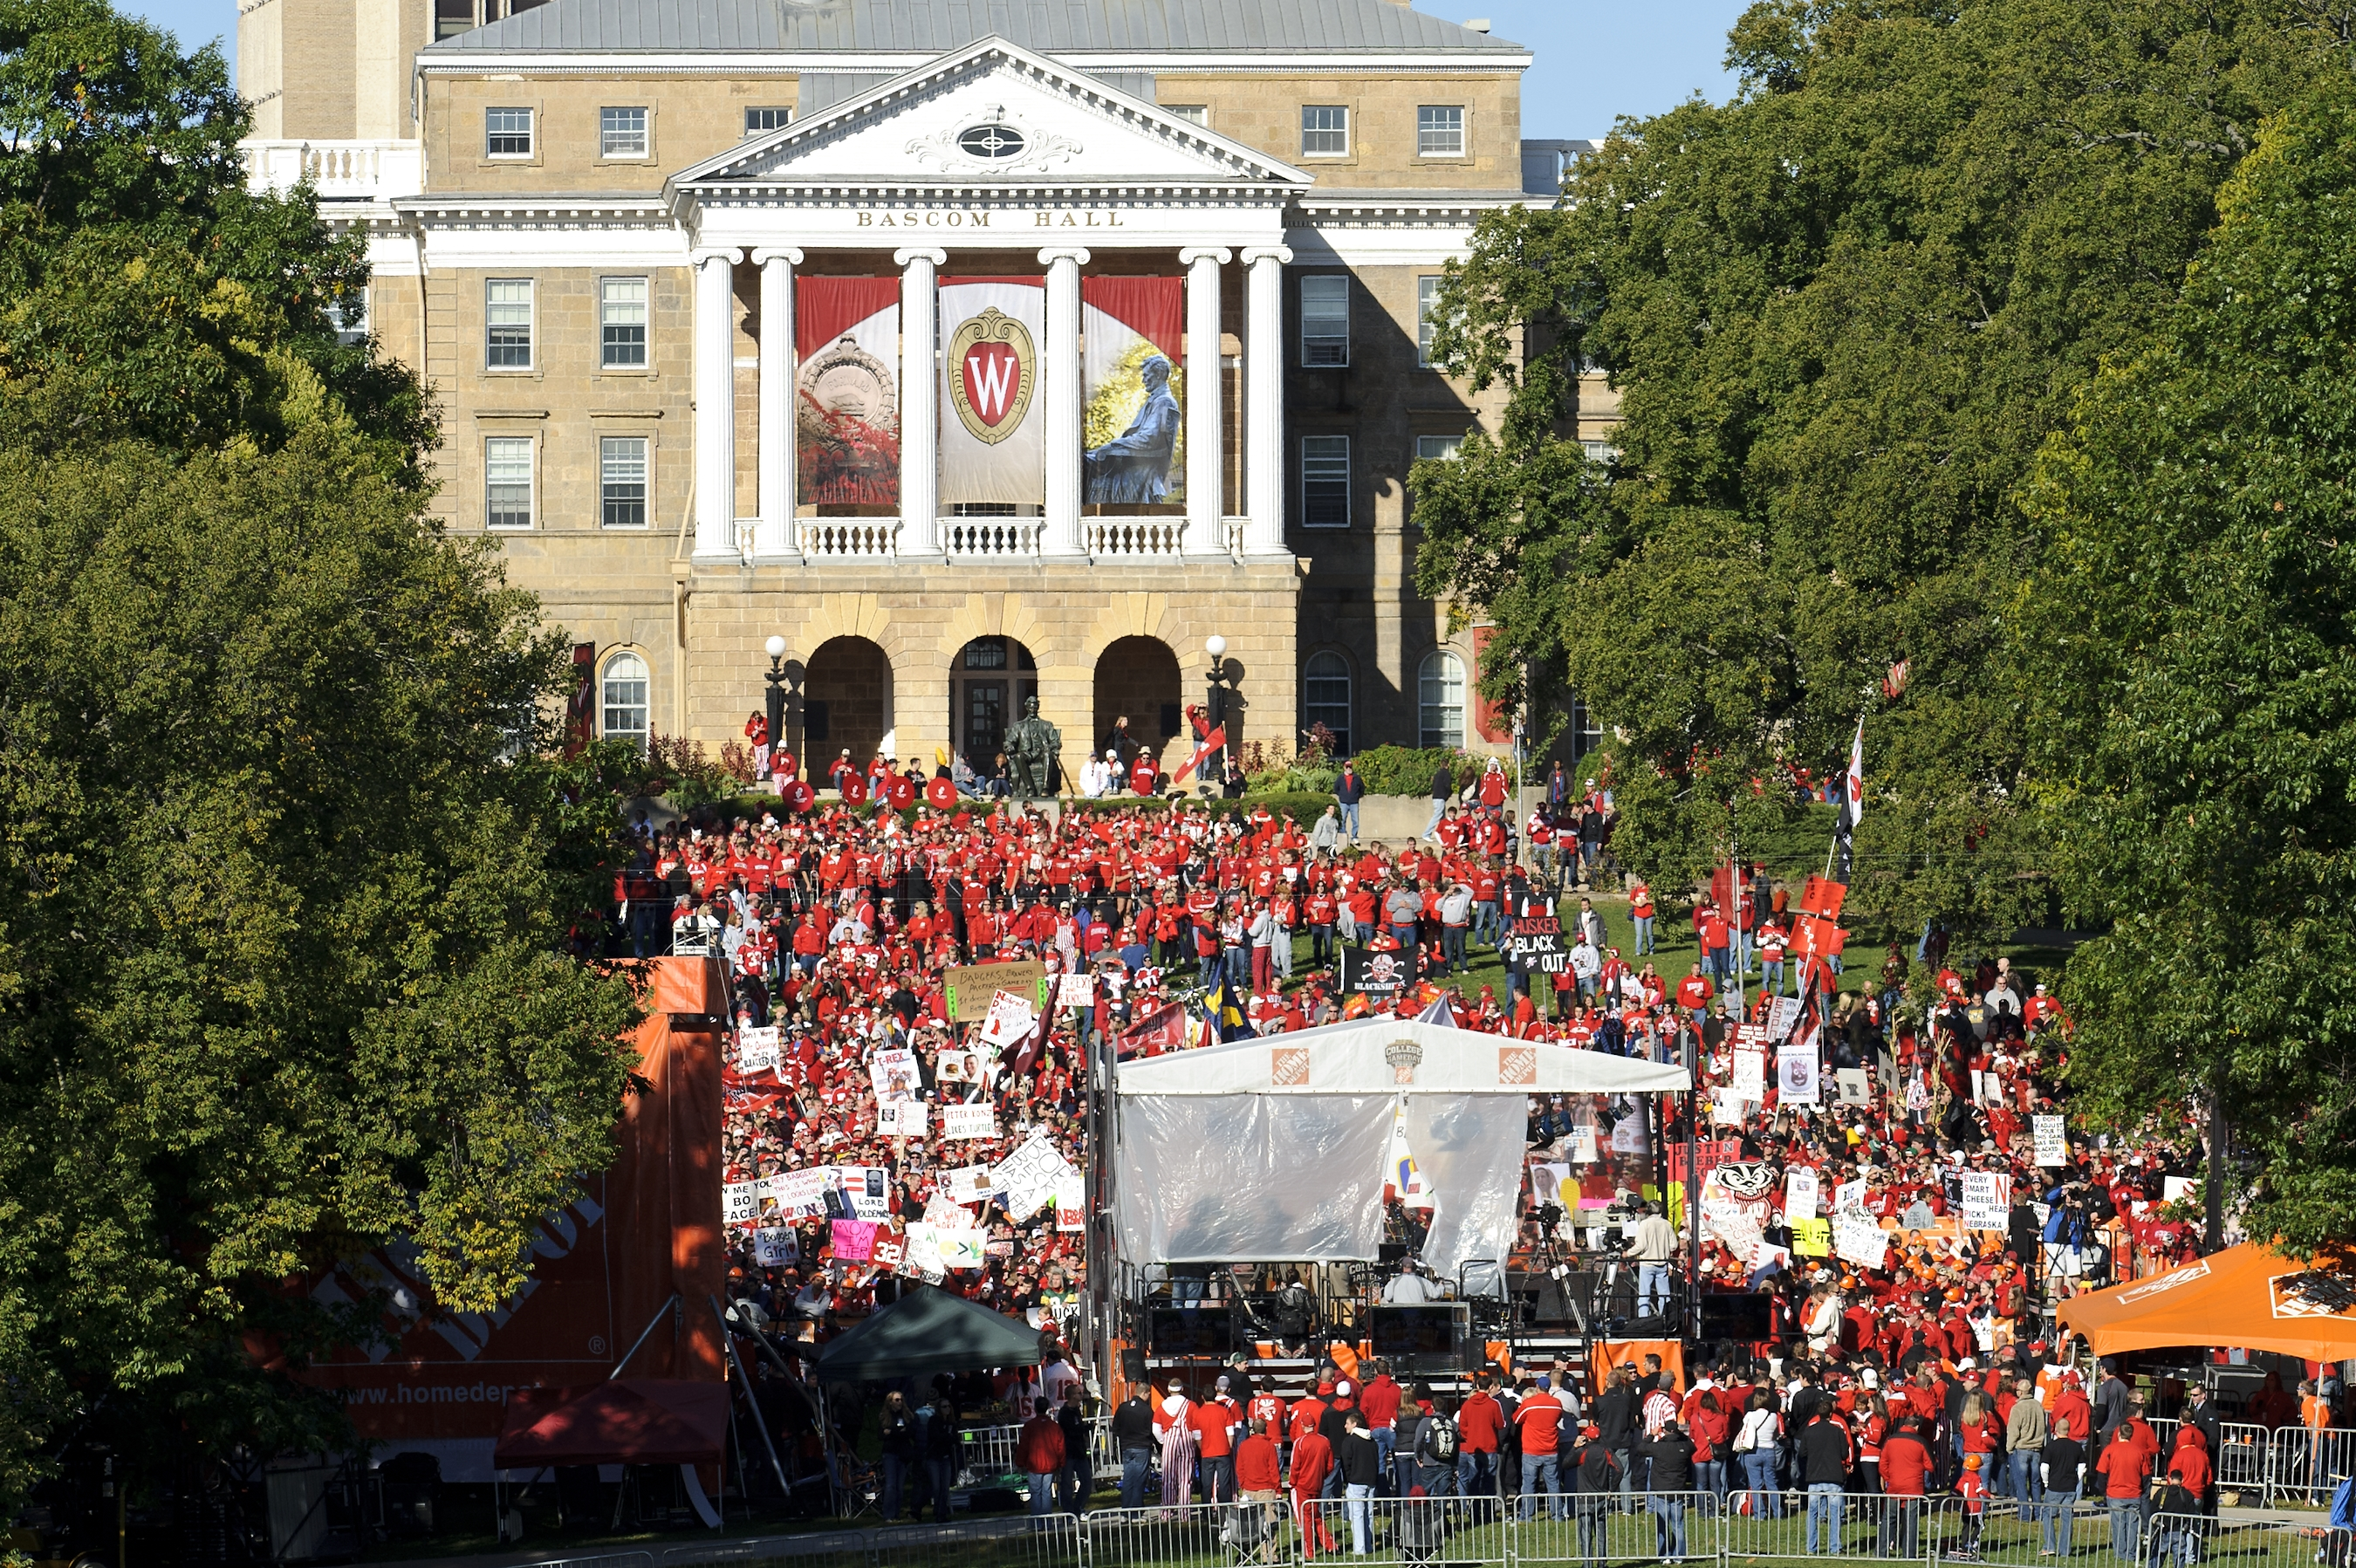 Badger and Nebraska Cornhusker fans come together on Bascom Hill for a 2011 broadcast of the ESPN show College GameDay. The show returns to campus Oct. 15.